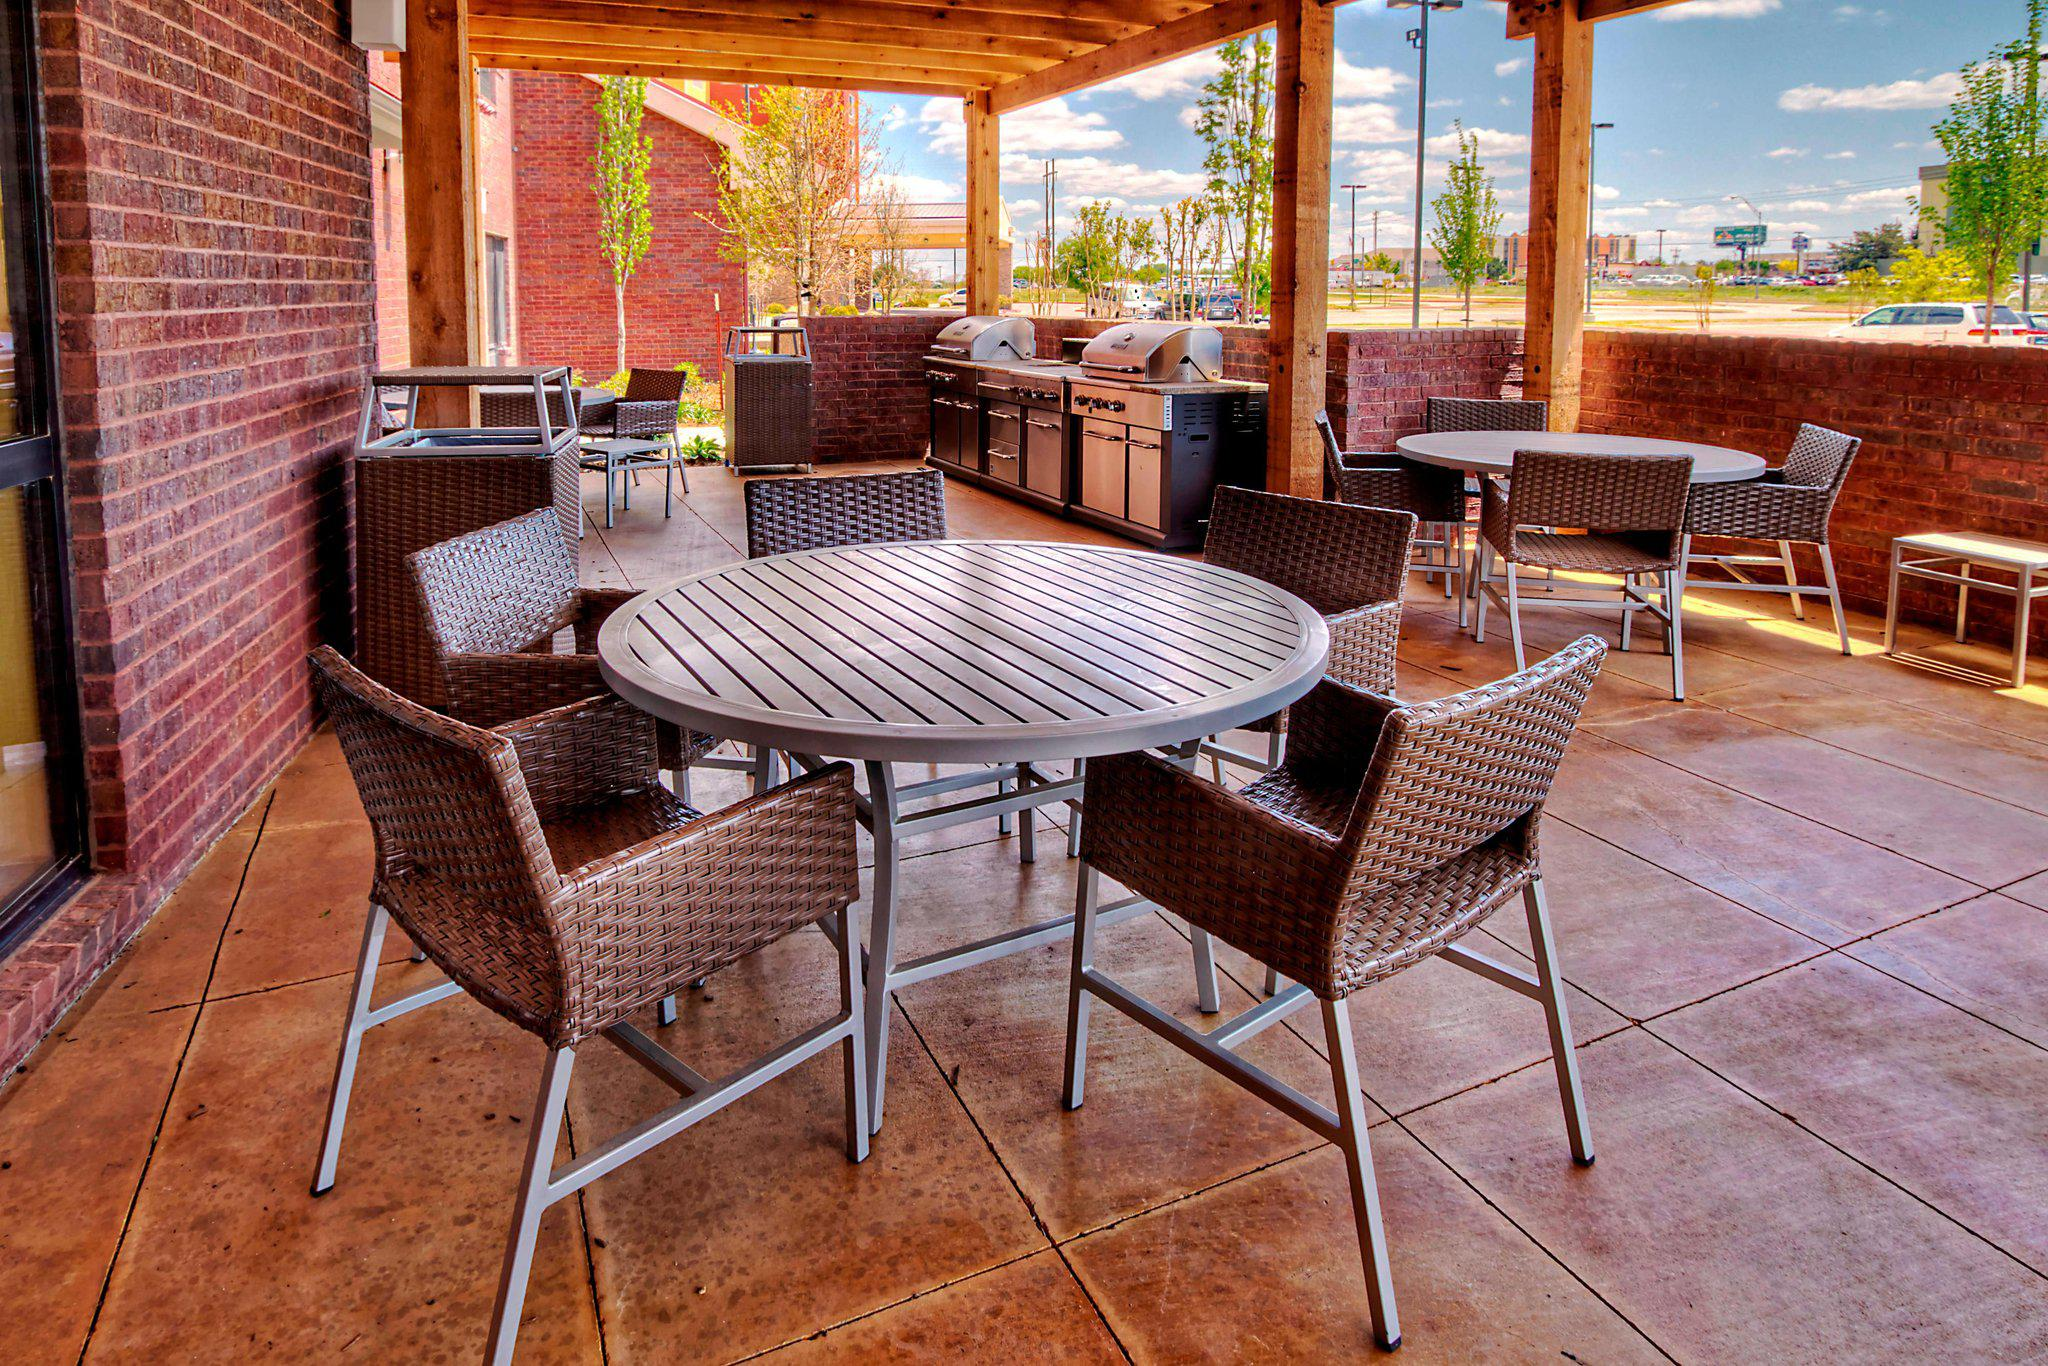 TownePlace Suites by Marriott Oklahoma City Airport